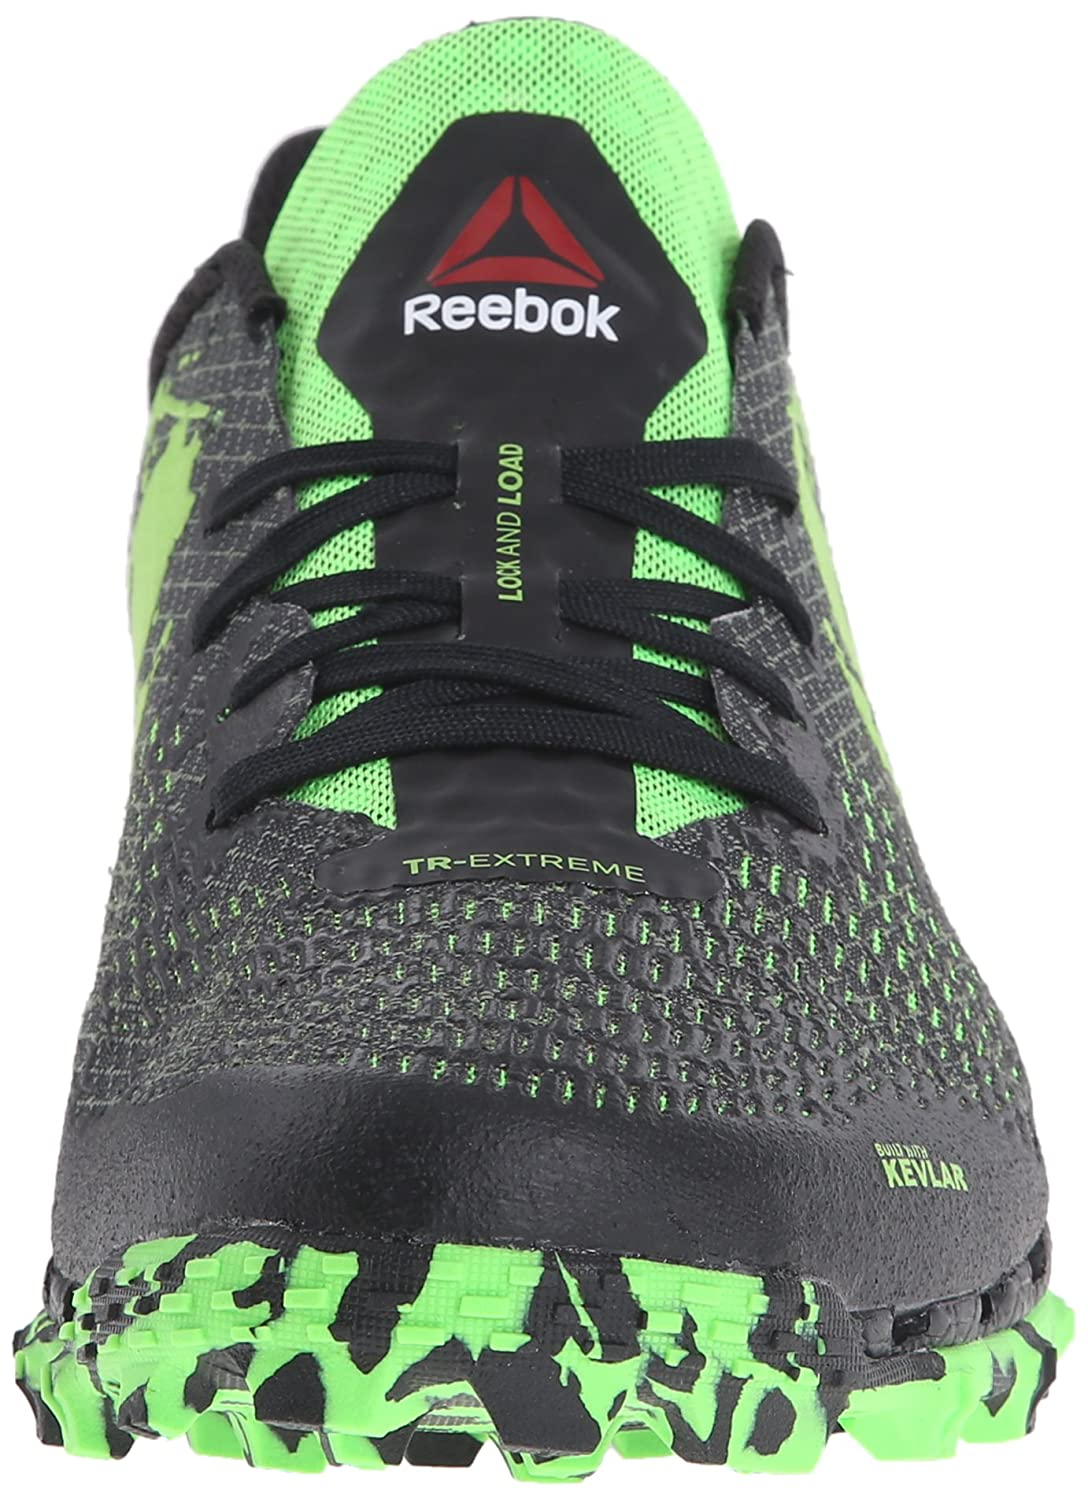 93949887188 Reebok Men s All Terrain Extreme Wc Trail Running Shoe Gravel Black Solar  Green 8.5 D(M) US  Buy Online at Low Prices in India - Amazon.in